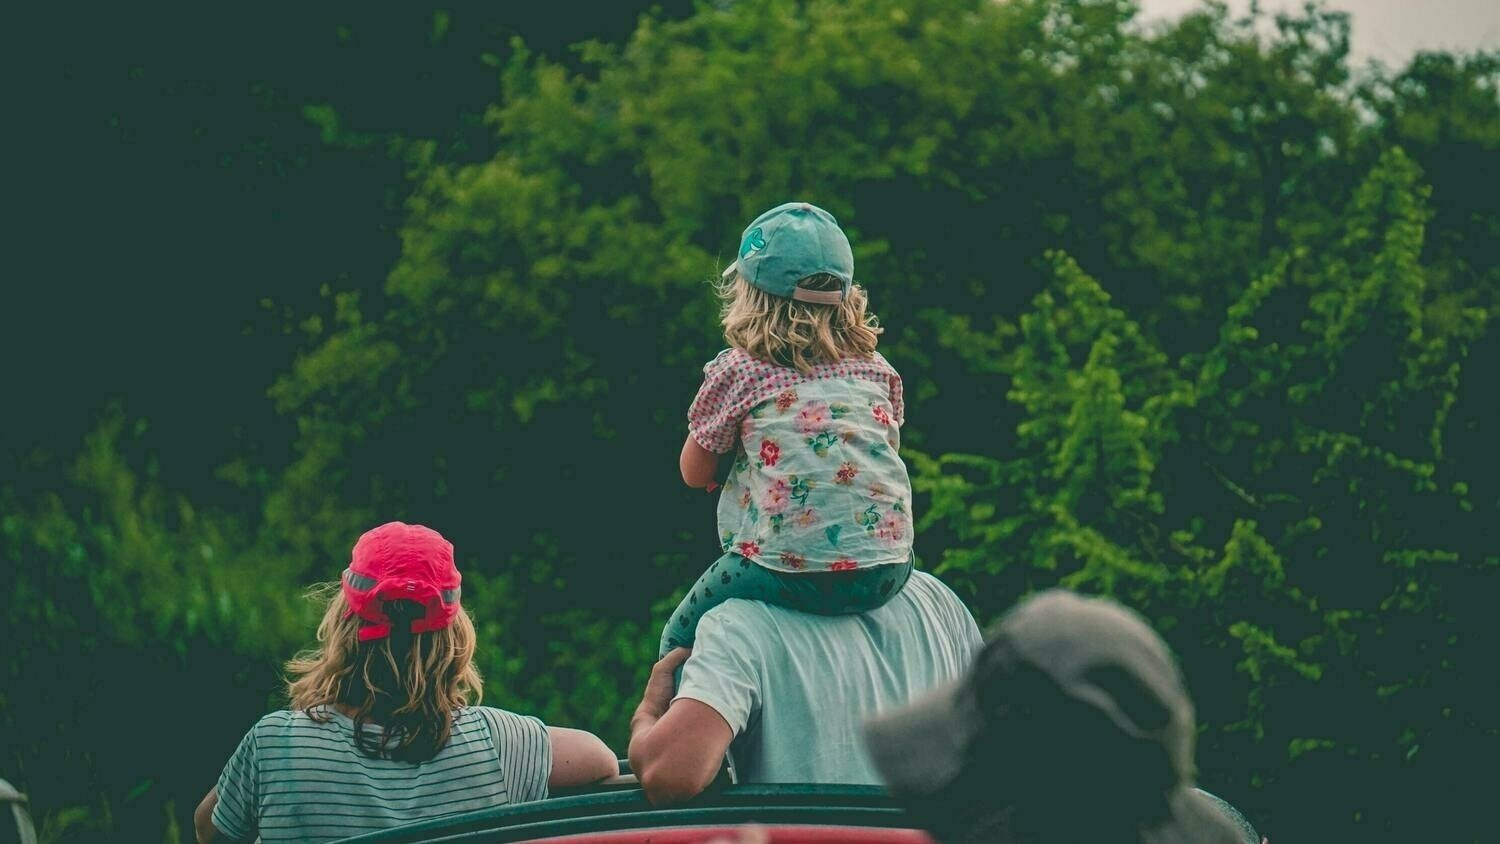 Parenting at work: 6 lessons from New Zealand